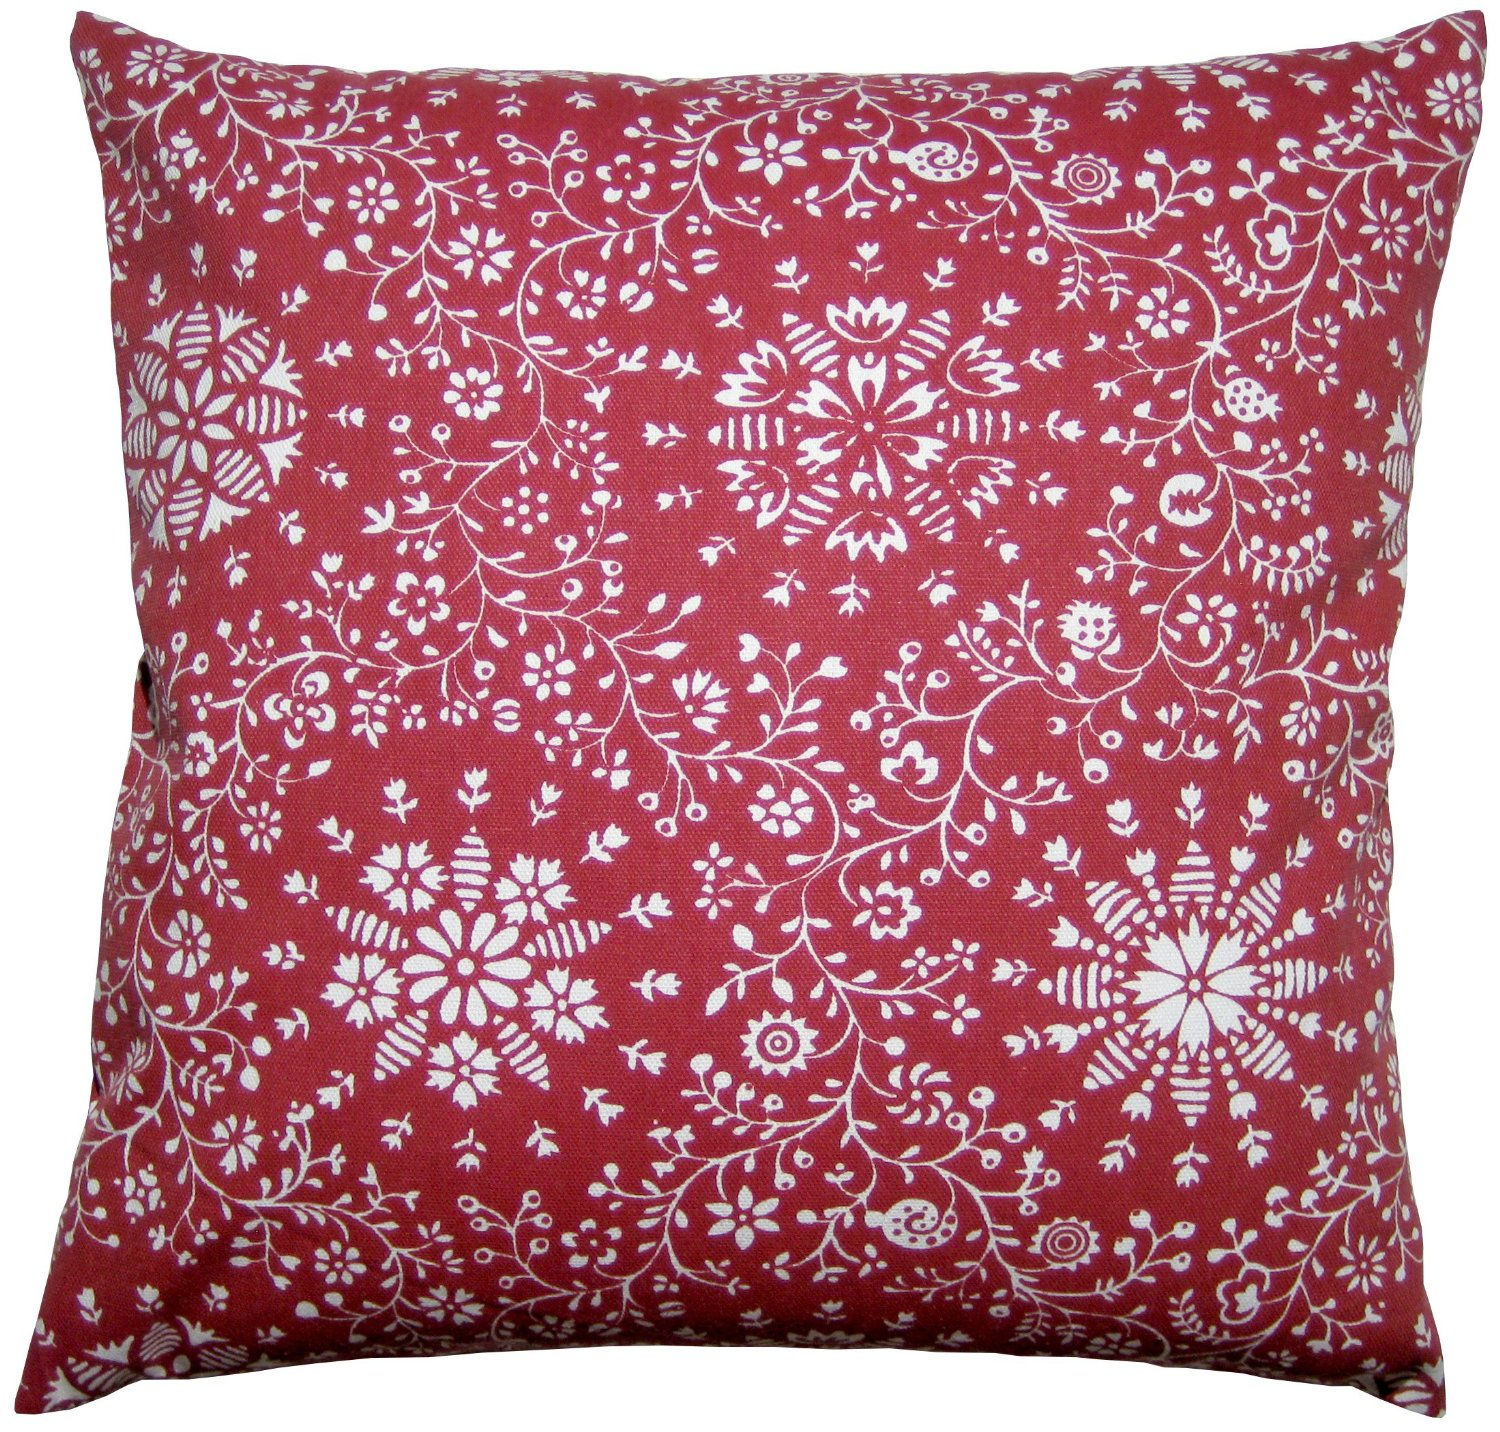 Red Pillows in The Bedroom - Panda s House